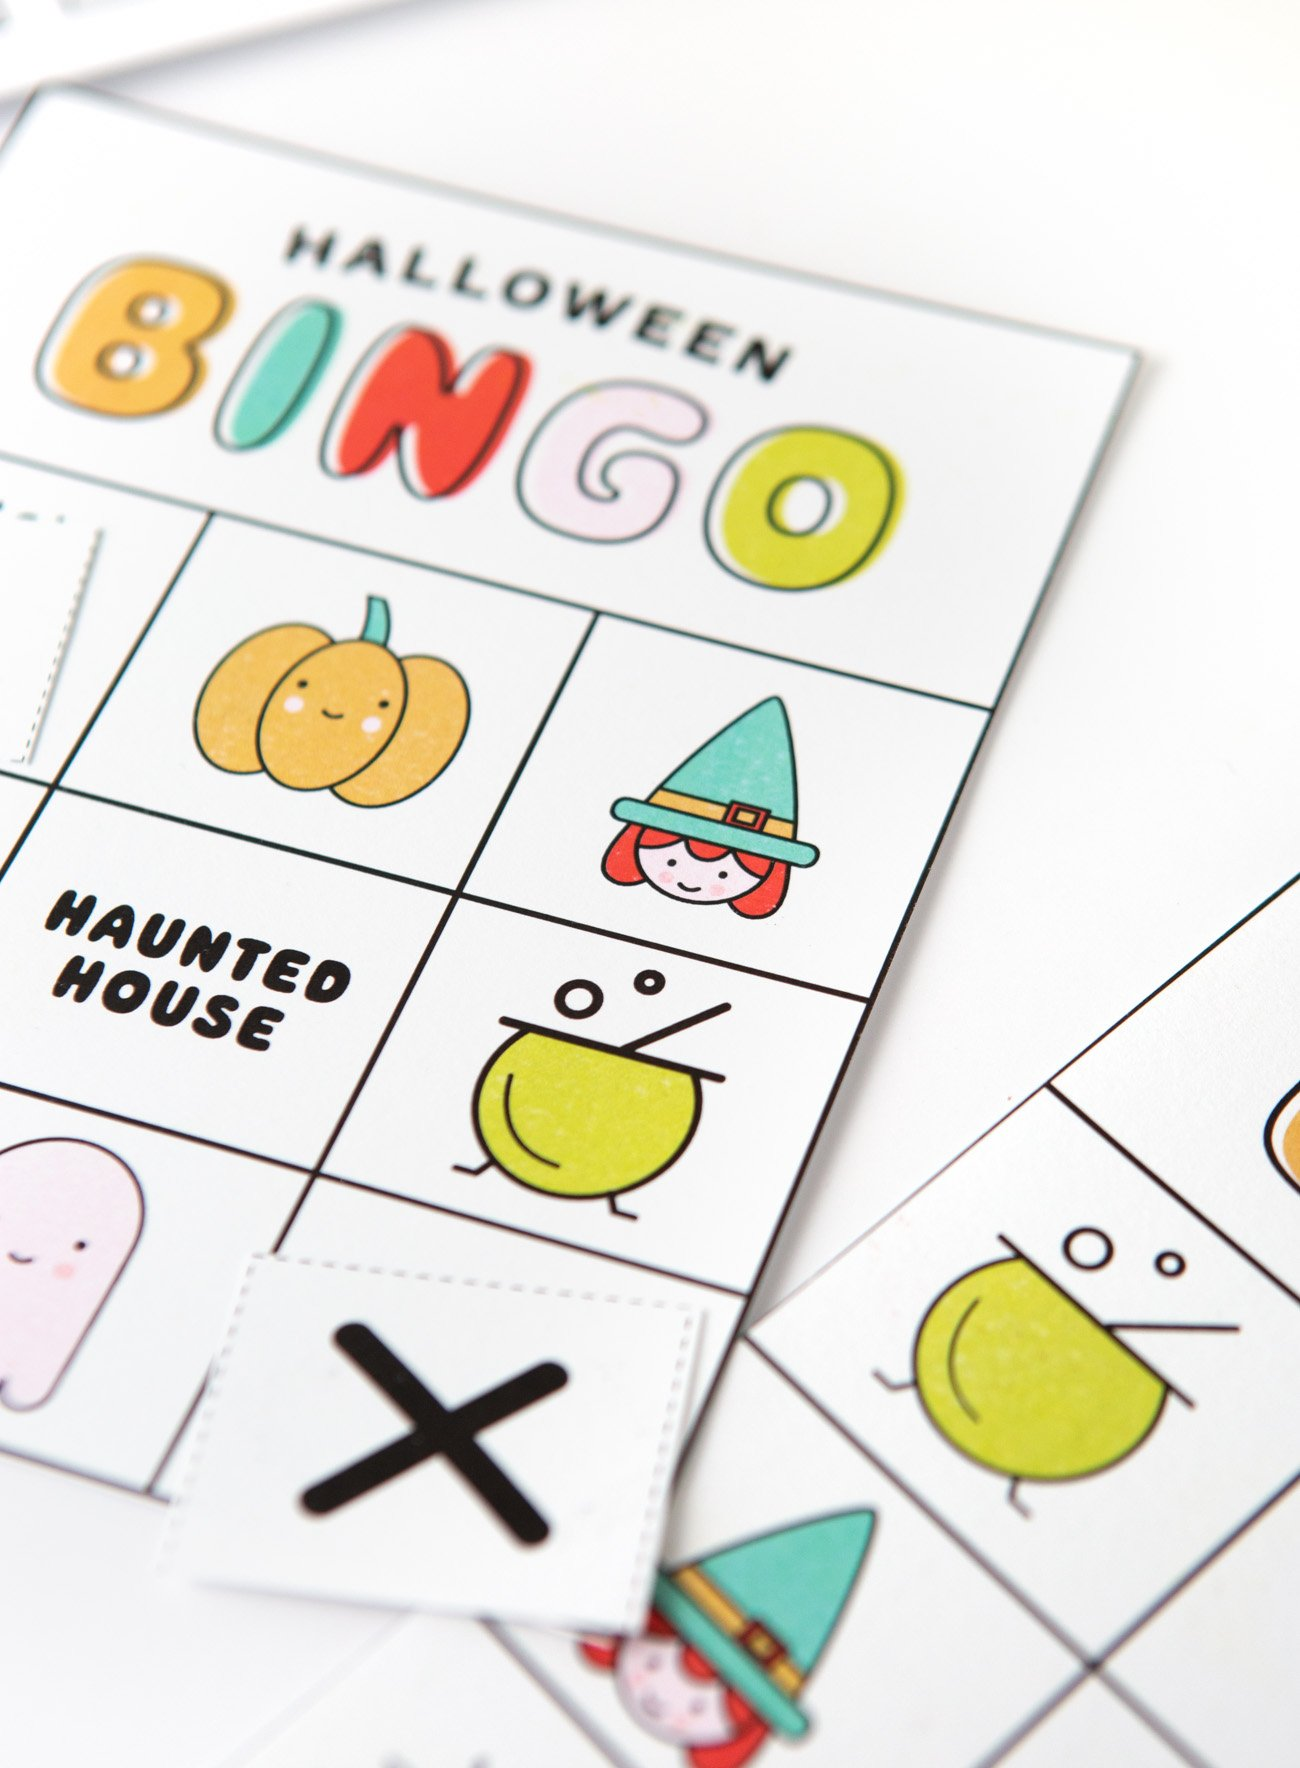 photo relating to Printable Halloween Bingo Cards named No cost Printable Halloween Bingo Playing cards - Structure Consume Repeat